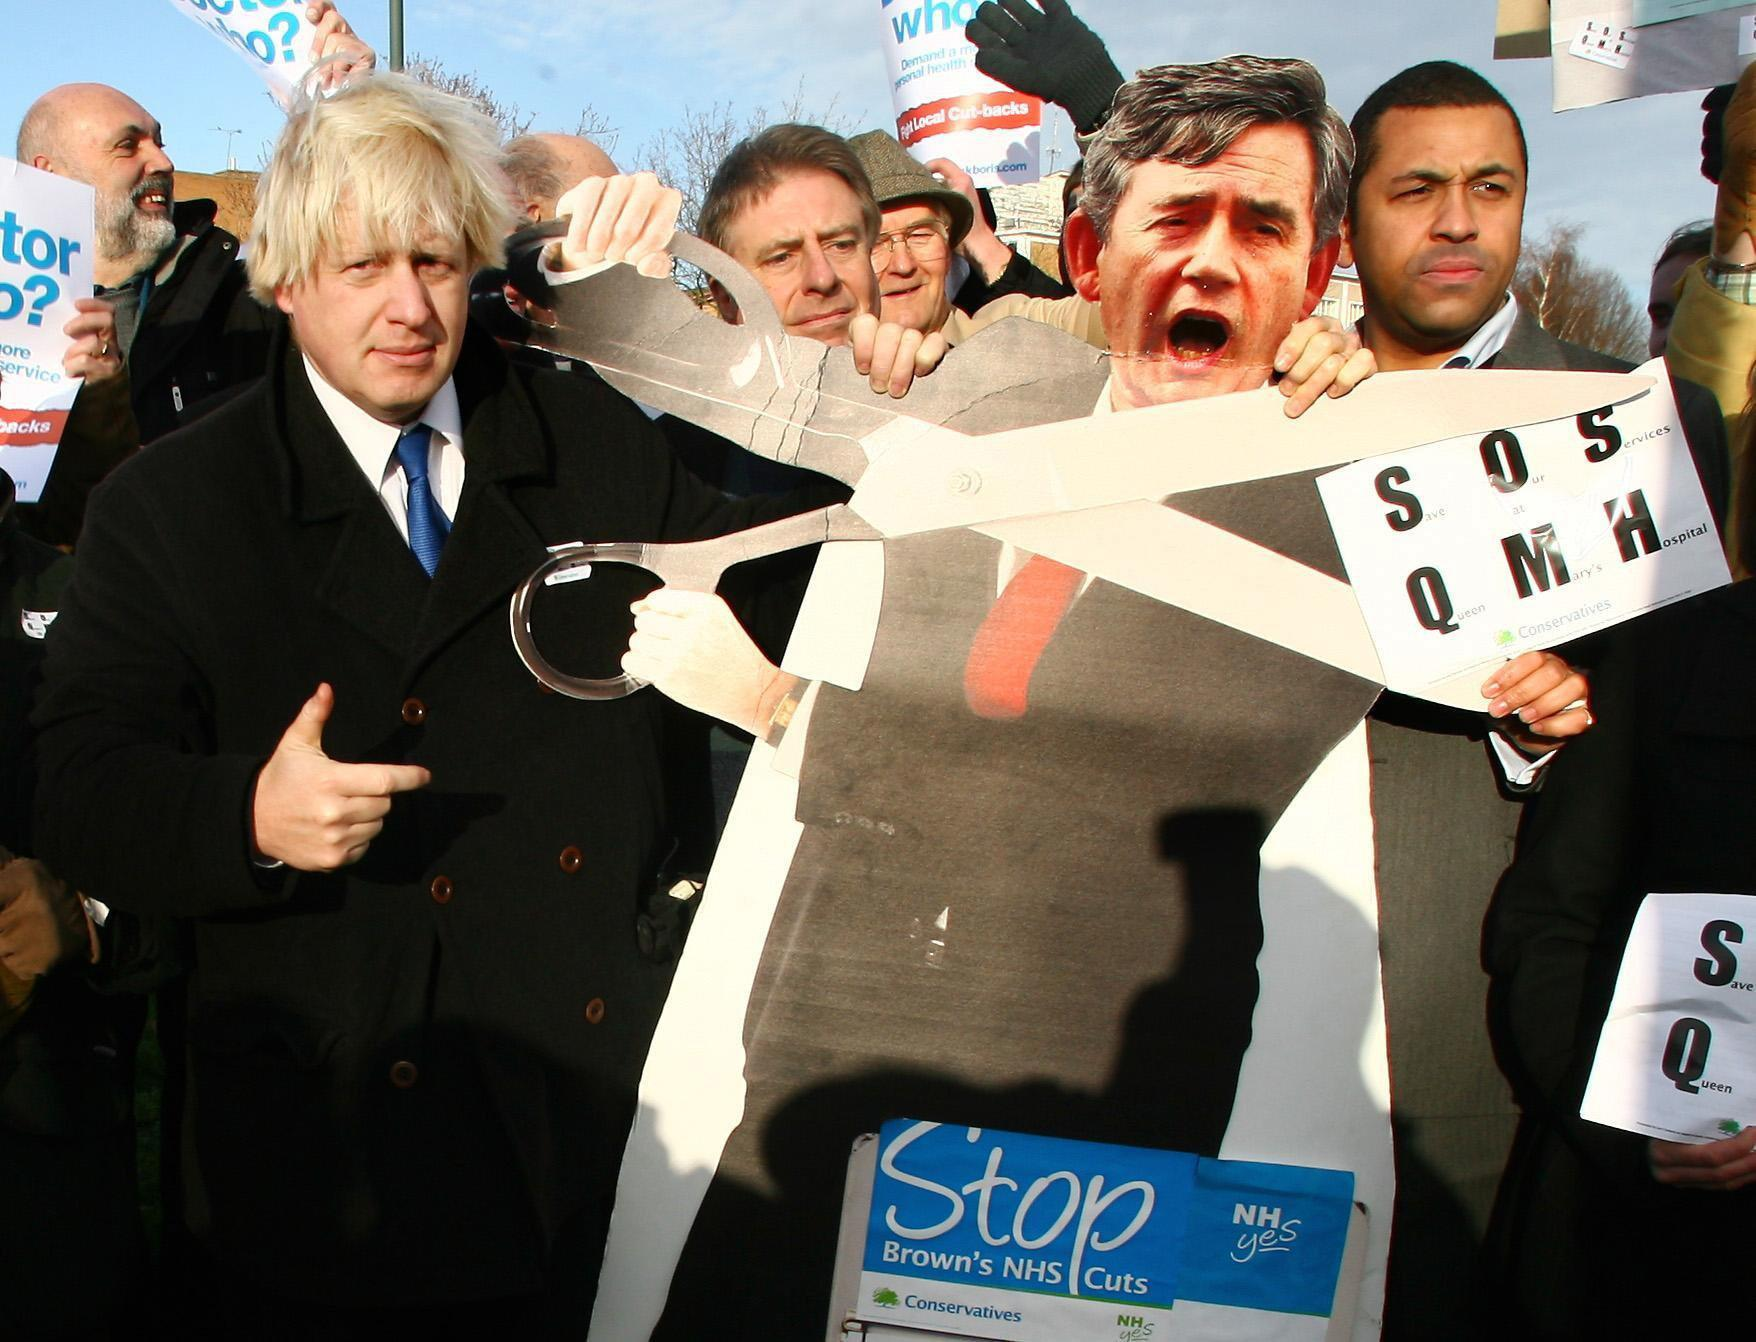 Boris Johnson (left) joins the Save our Services campaign against health cuts at St, Mary's Hospital in Sidcup, Kent.